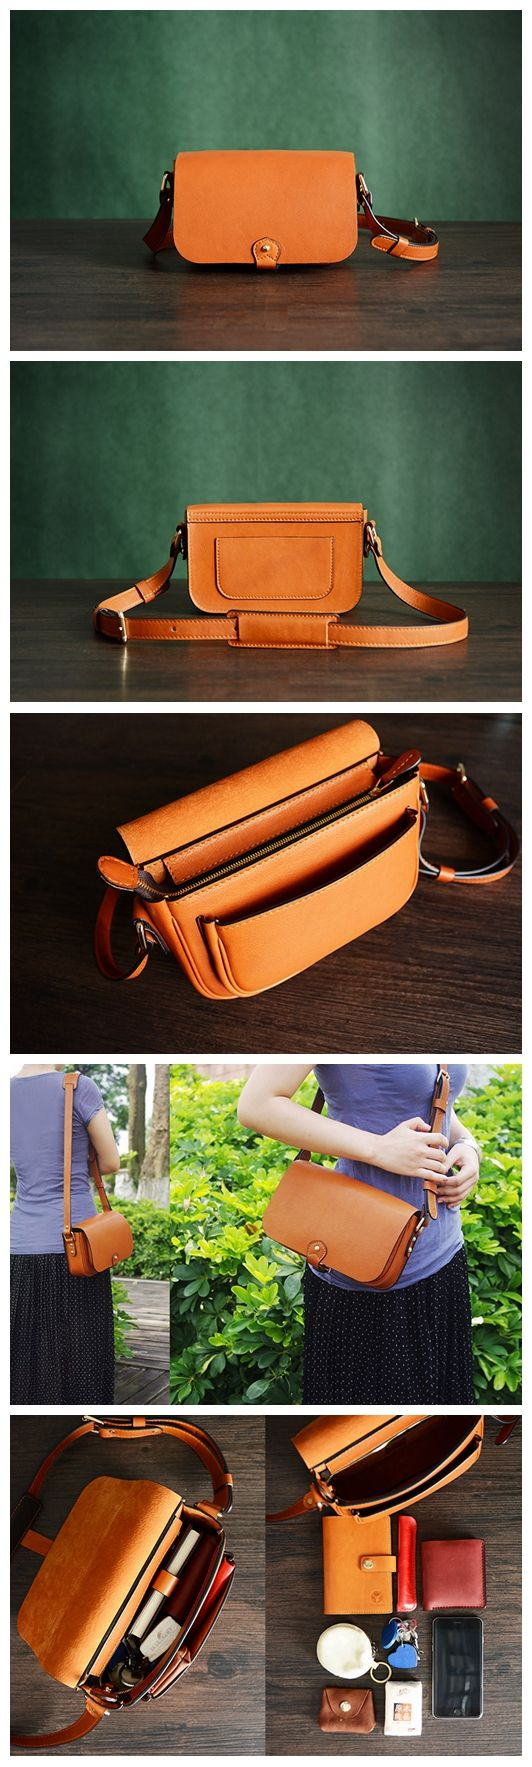 Custom Handmade Itanlian Vegetable Tanned Leather Satchel Bag Crossbody Shoulder Bag